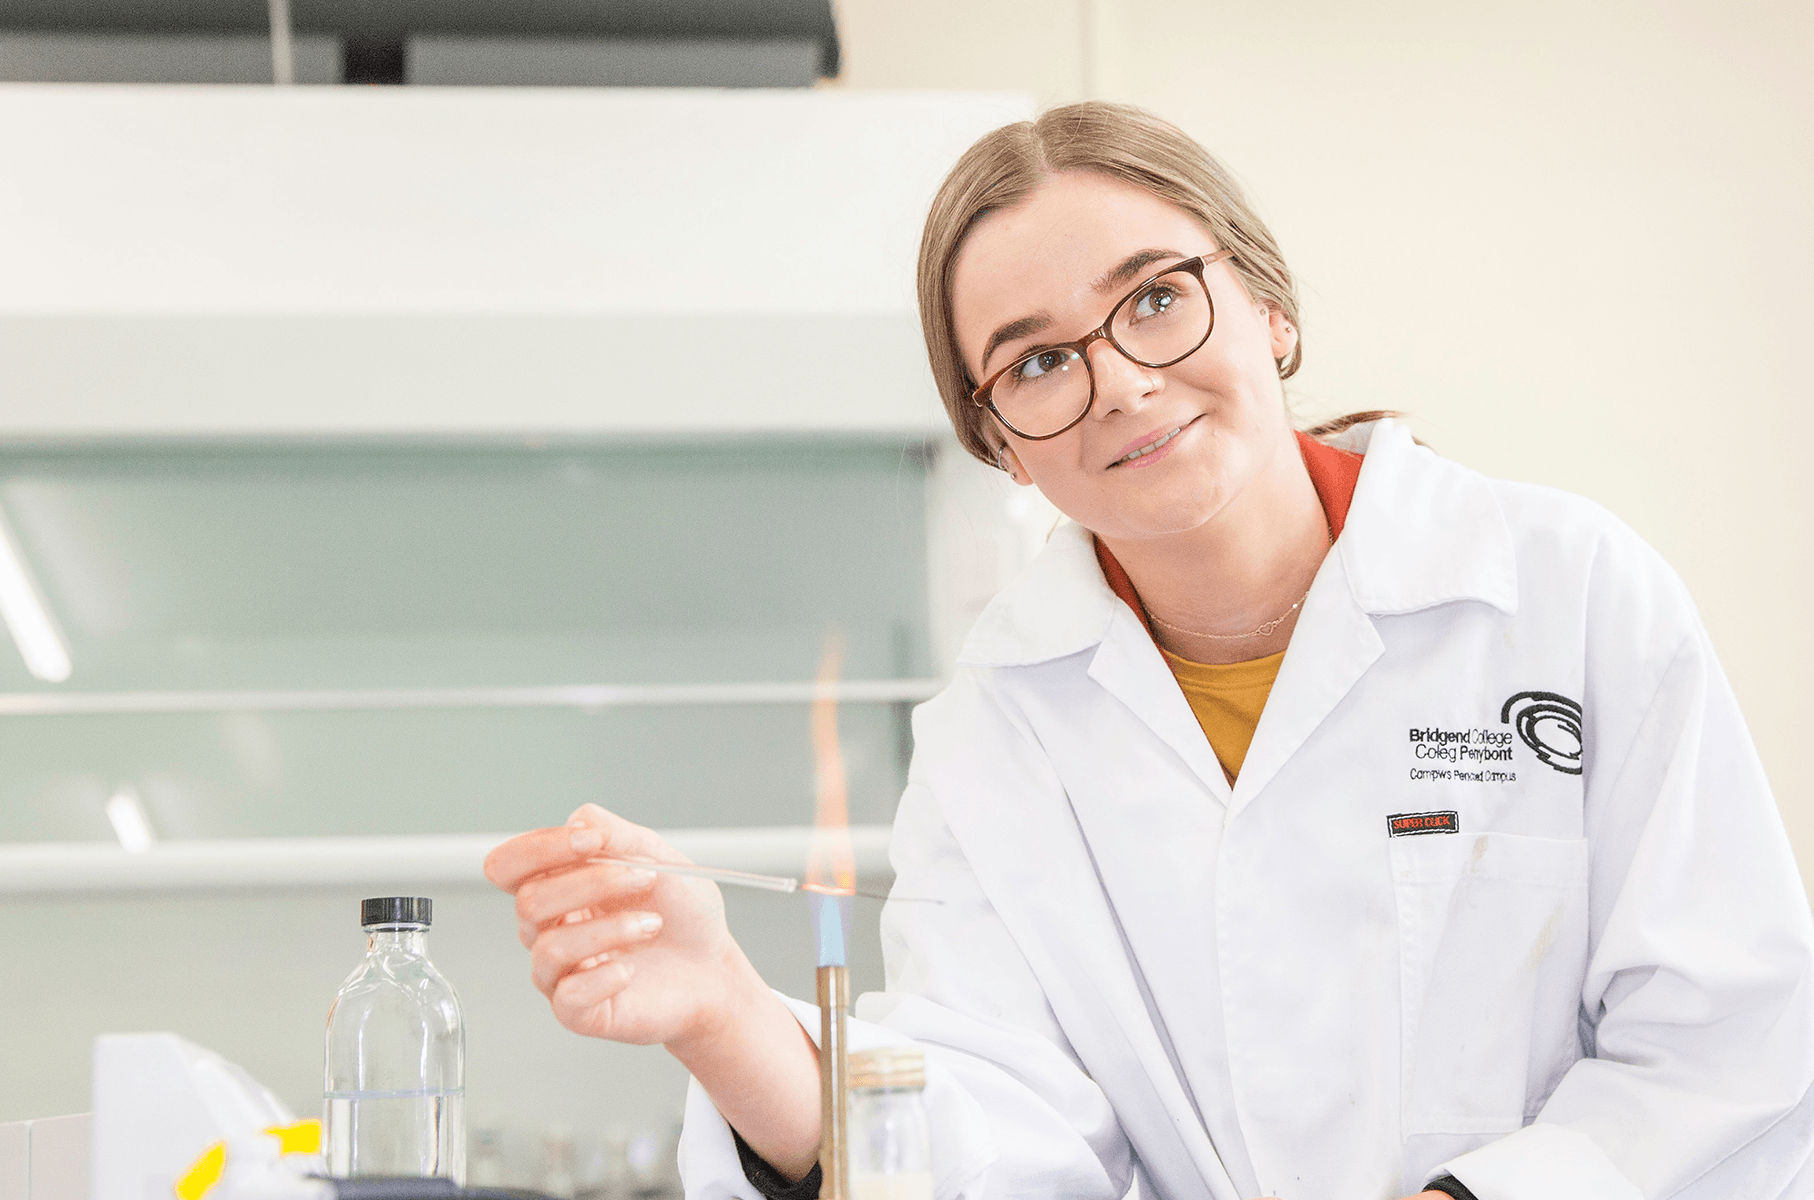 Student wearing a lab coat